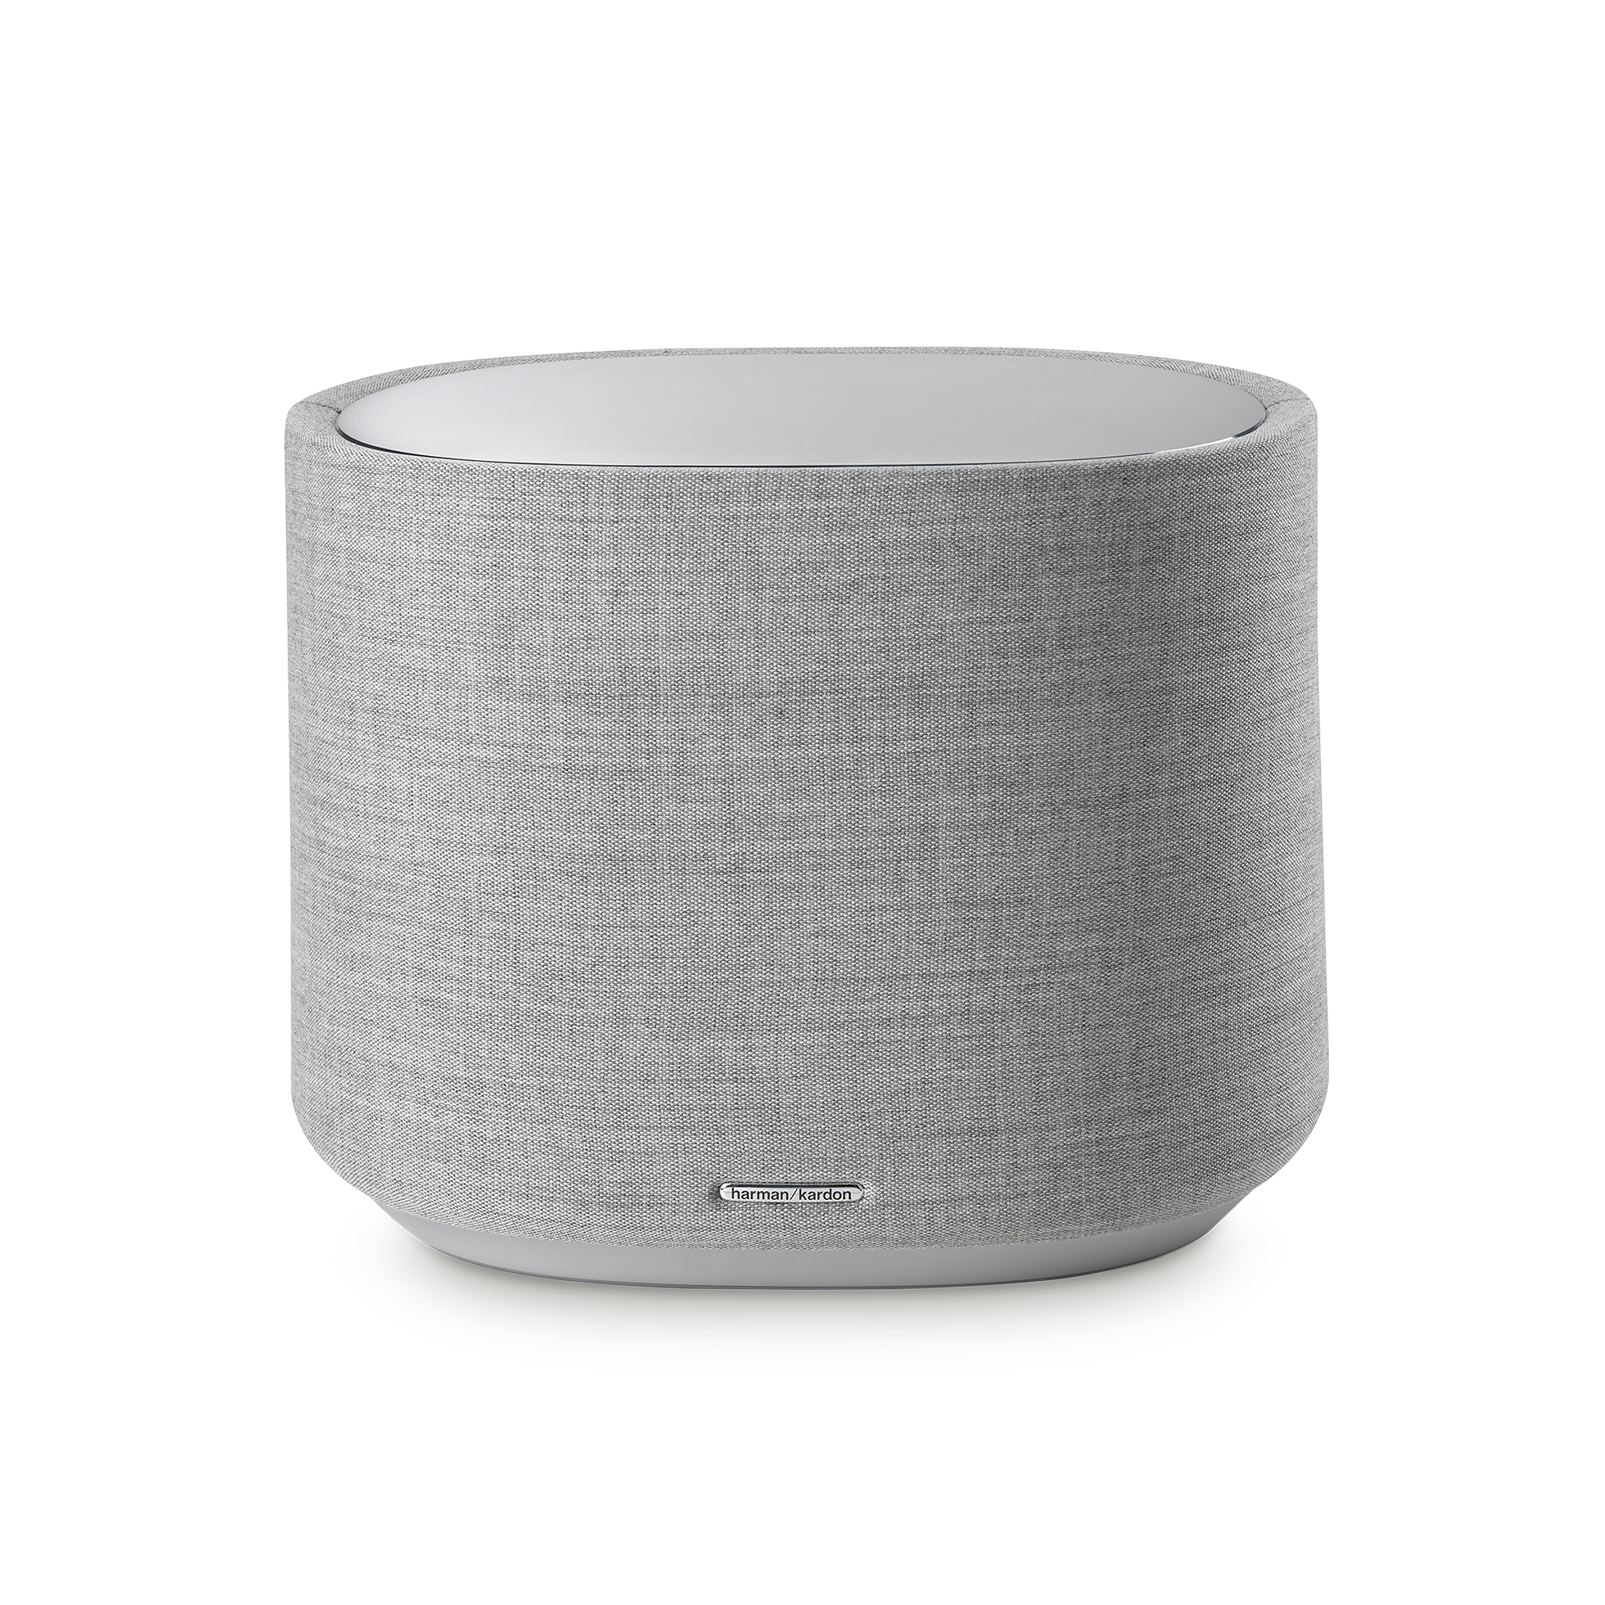 Harman Kardon Citation Sub - Grey - Thundering bass for movies and music - Front